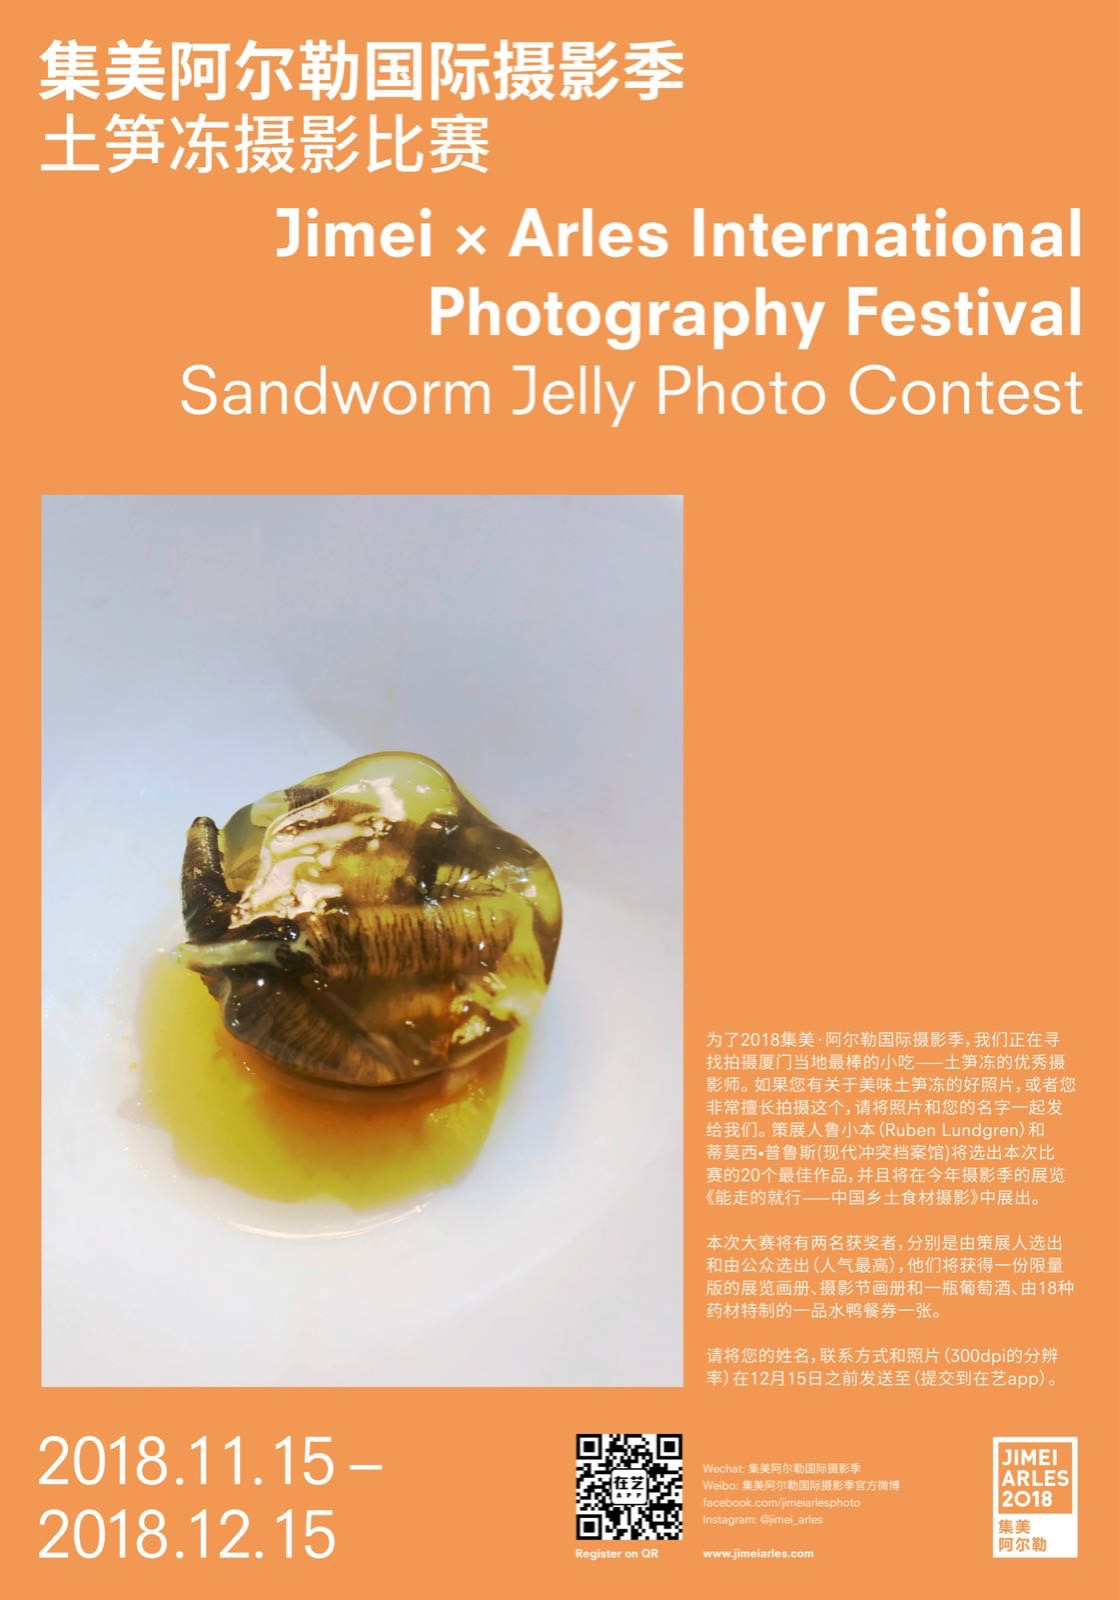 Jimei x Arles Photo Contest 2018.jpeg